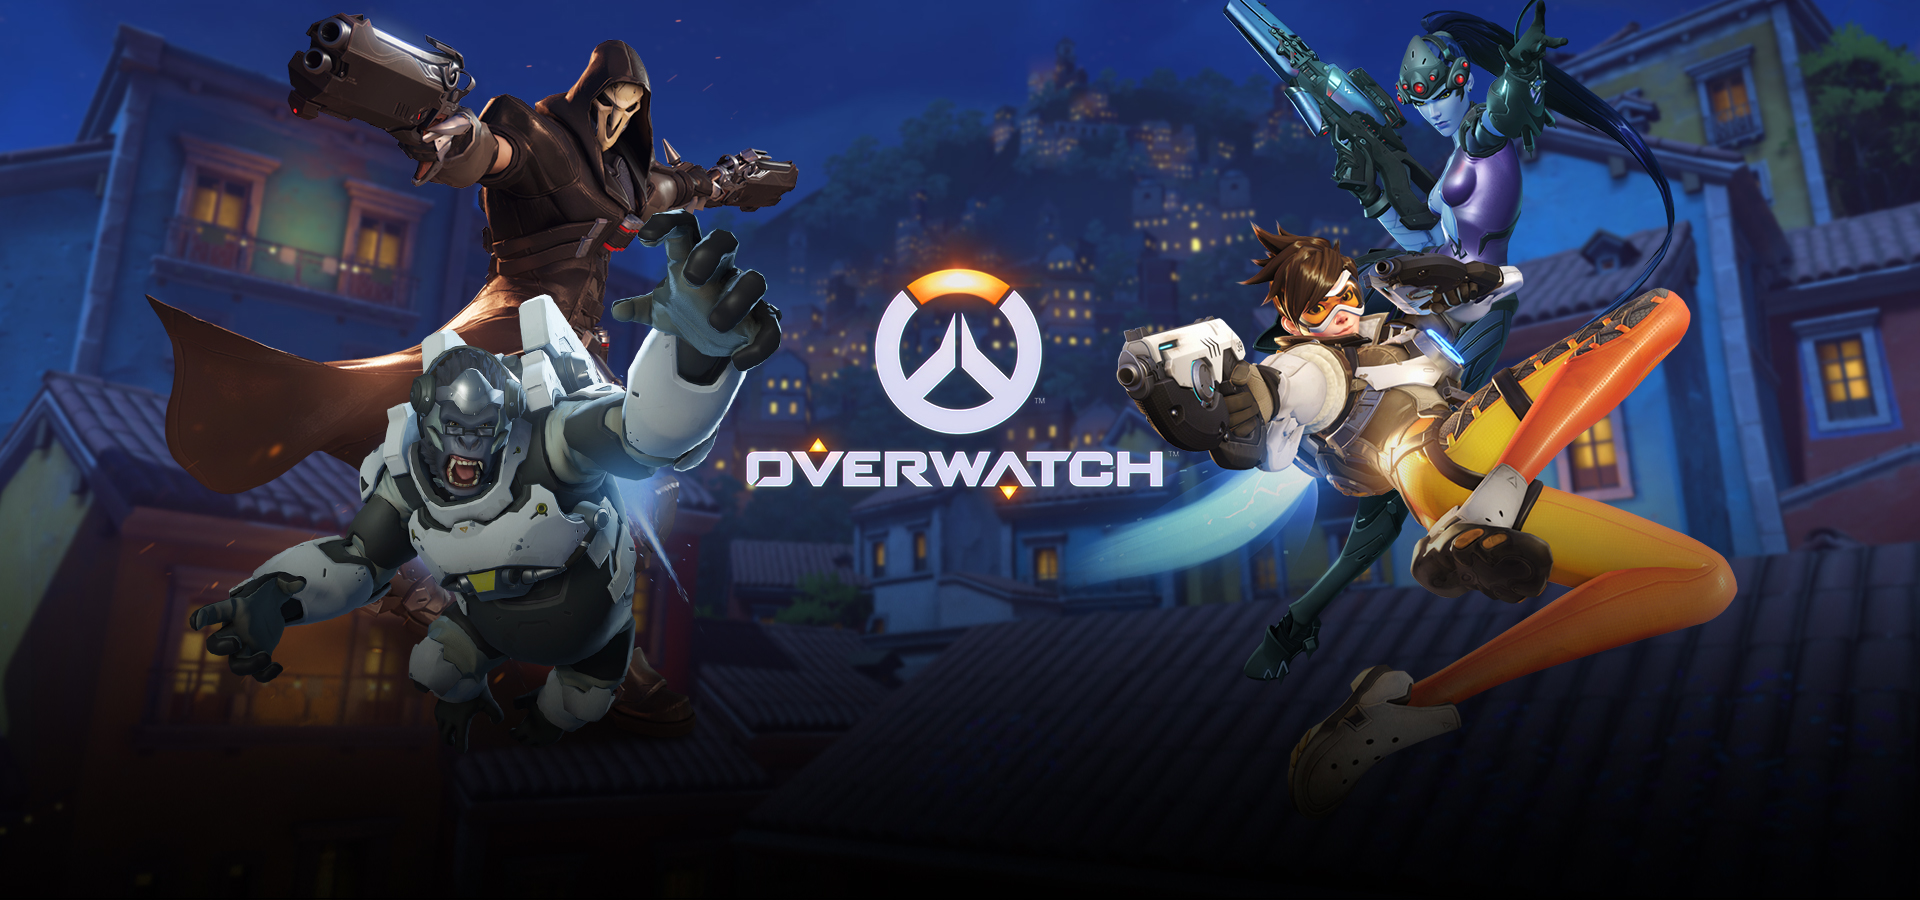 overwatch-landing-header-bg